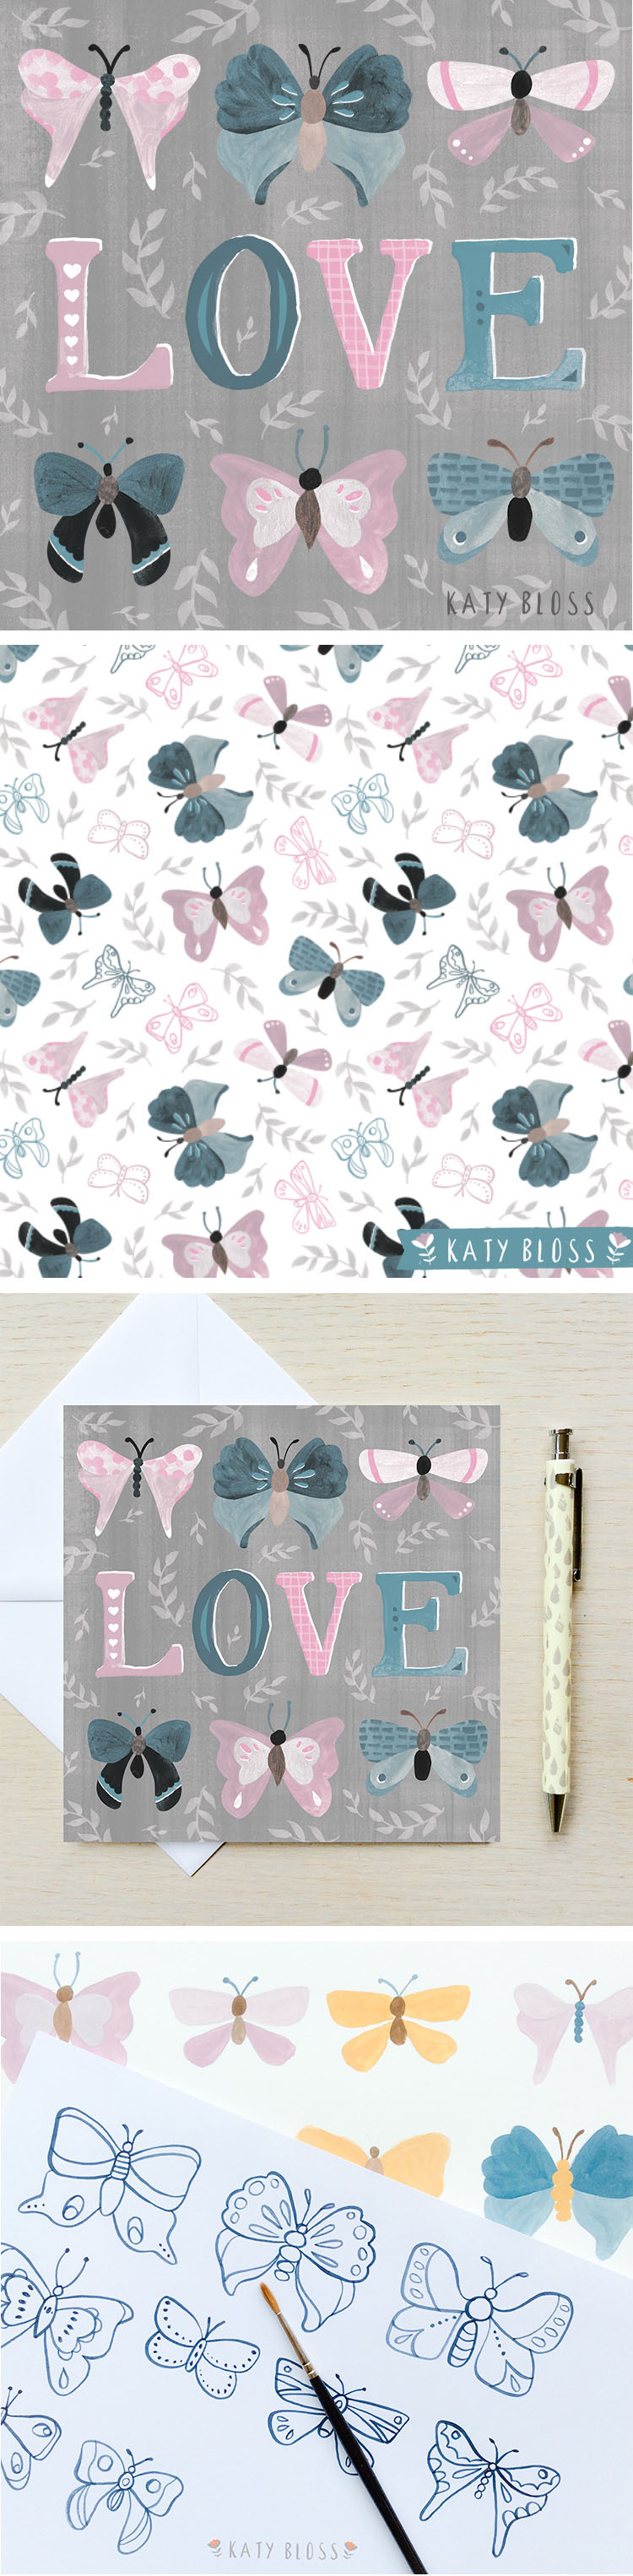 Katy Bloss Butterfly Love Valentine's Day Card Design and Butterfly Pattern Process